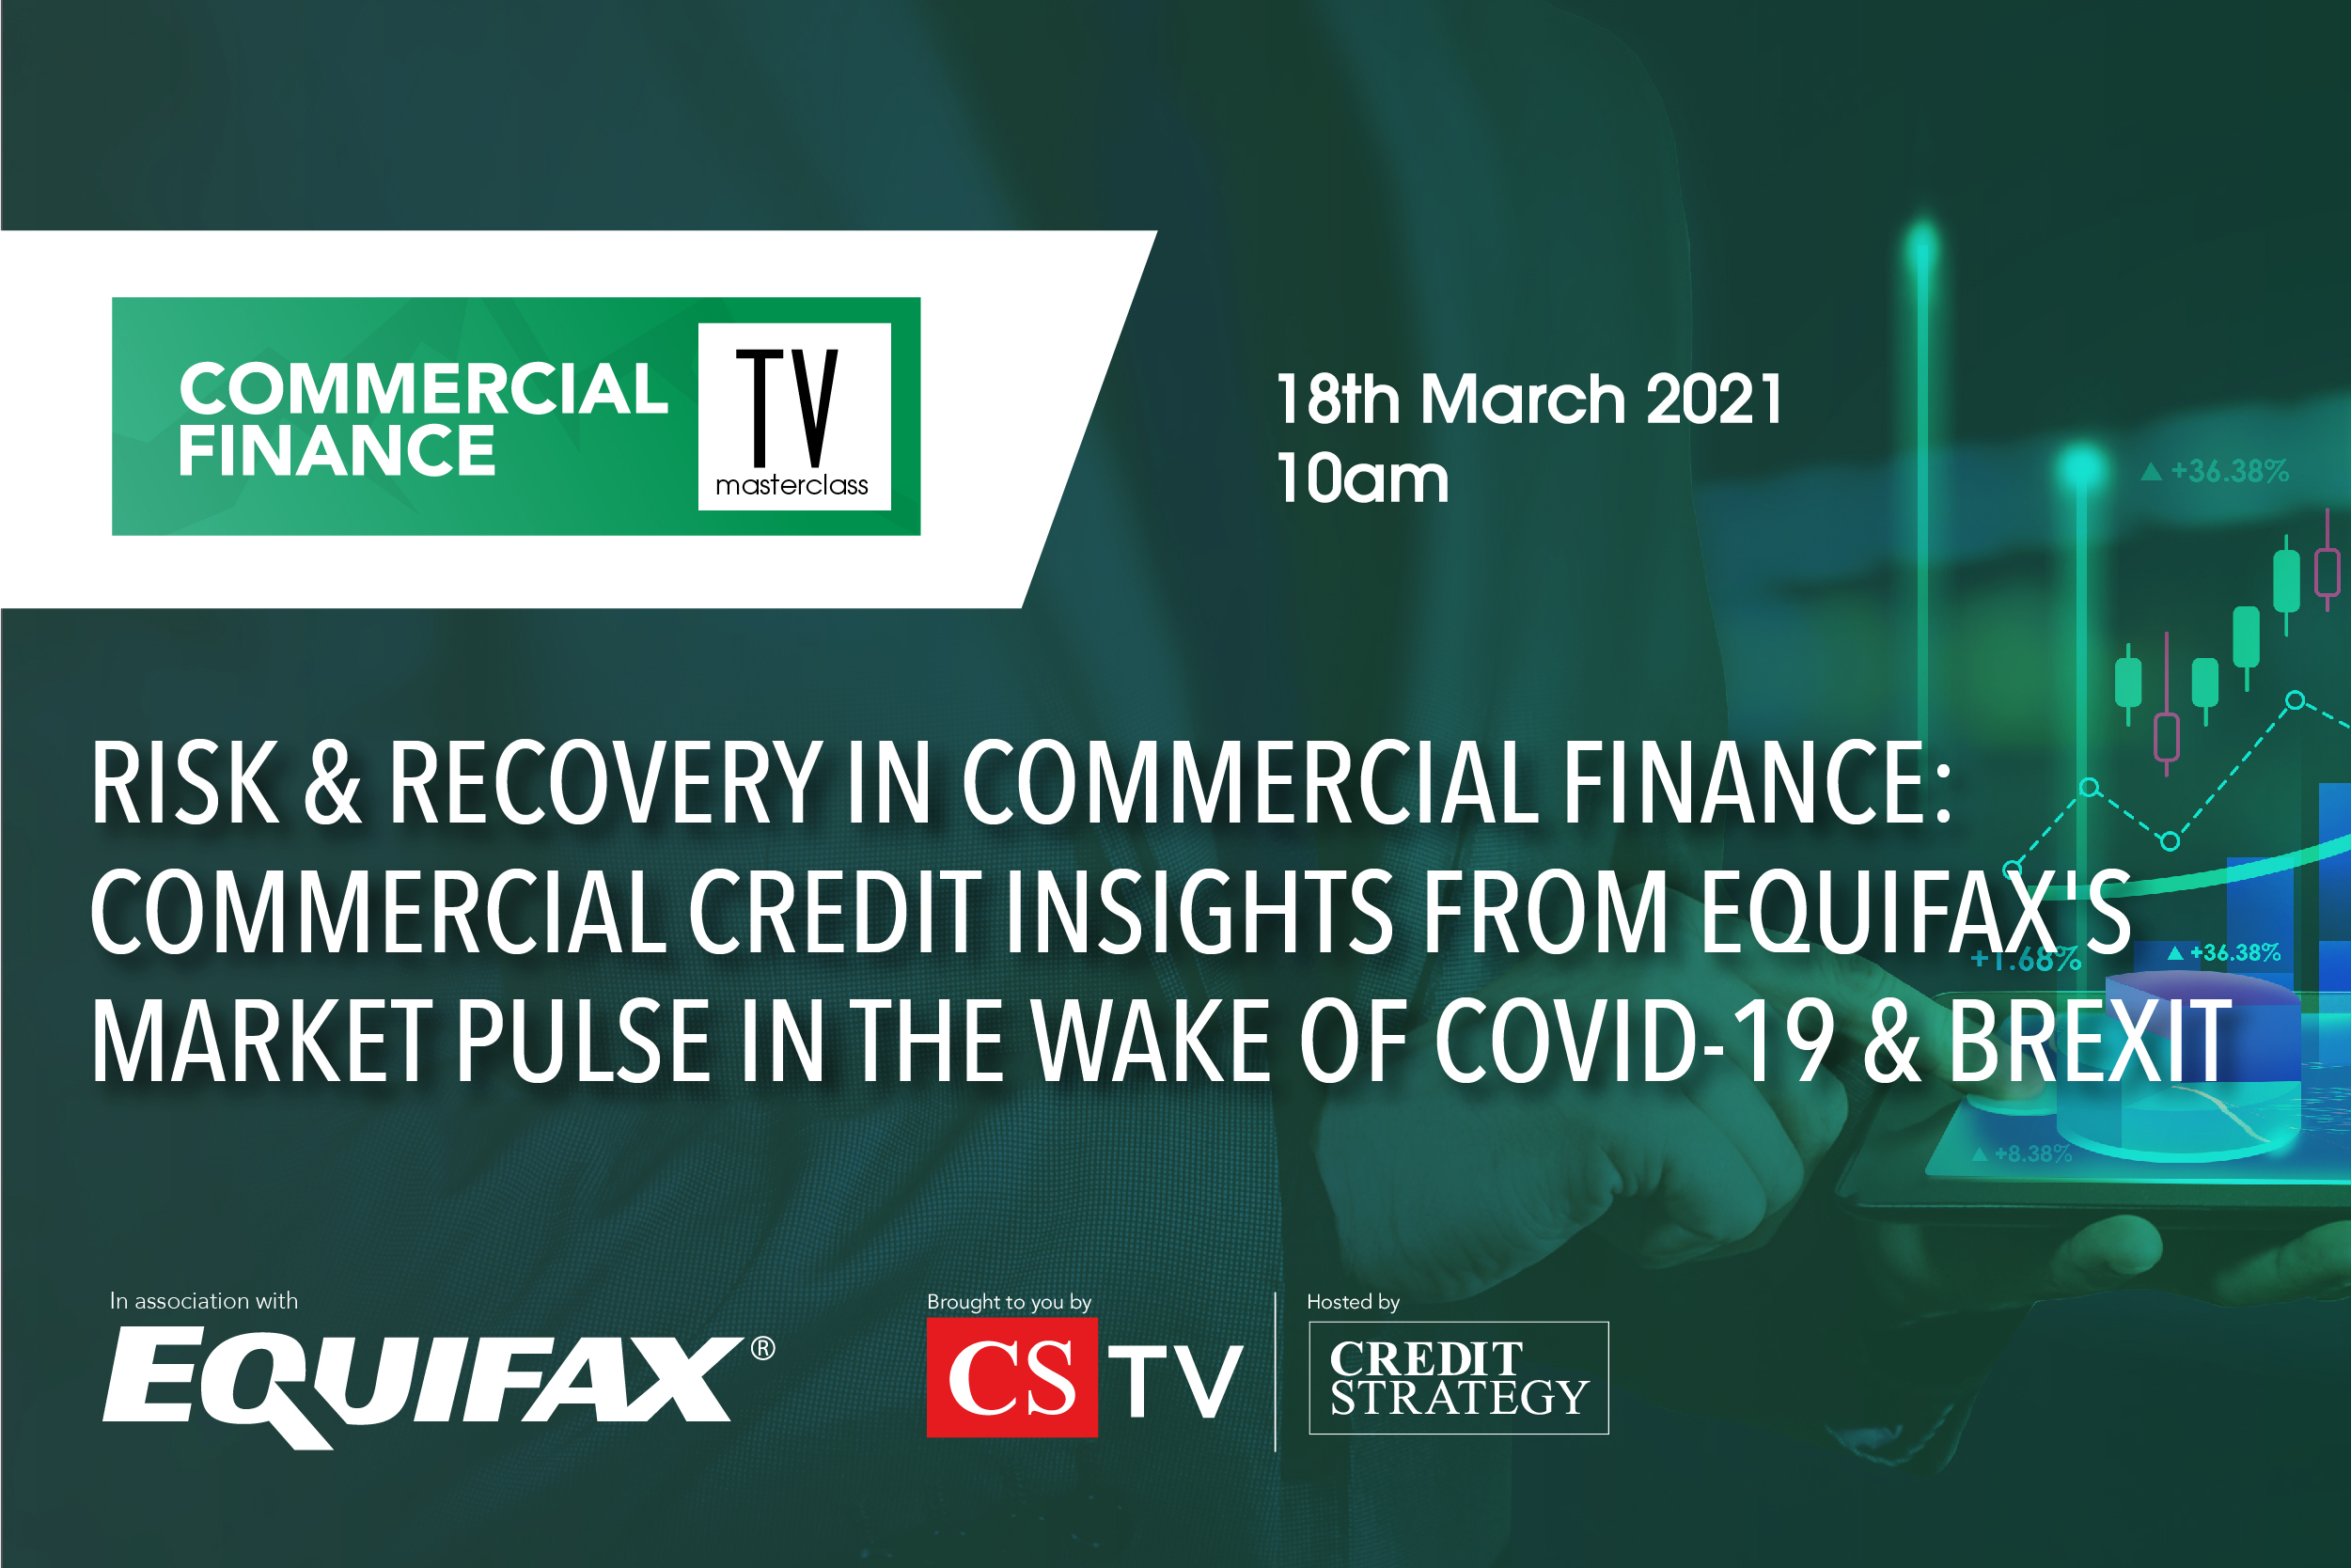 Risk & Recovery in Commercial Finance: Commercial credit insights from Equifax's Market Pulse in the wake of Covid-19 & Brexit